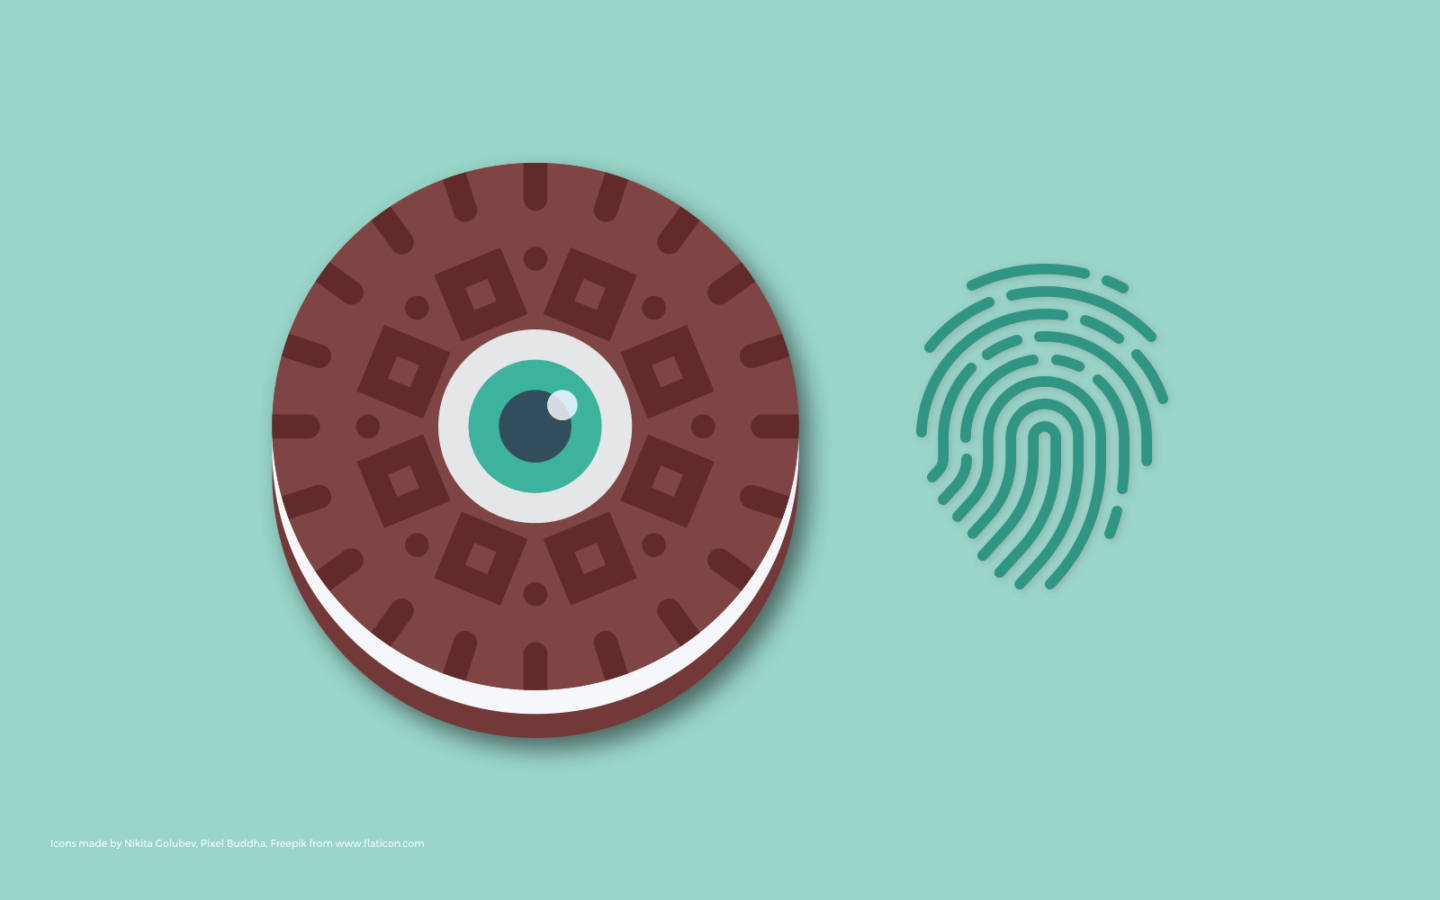 Cookies and fingerprinting: tracking methods clearly explained